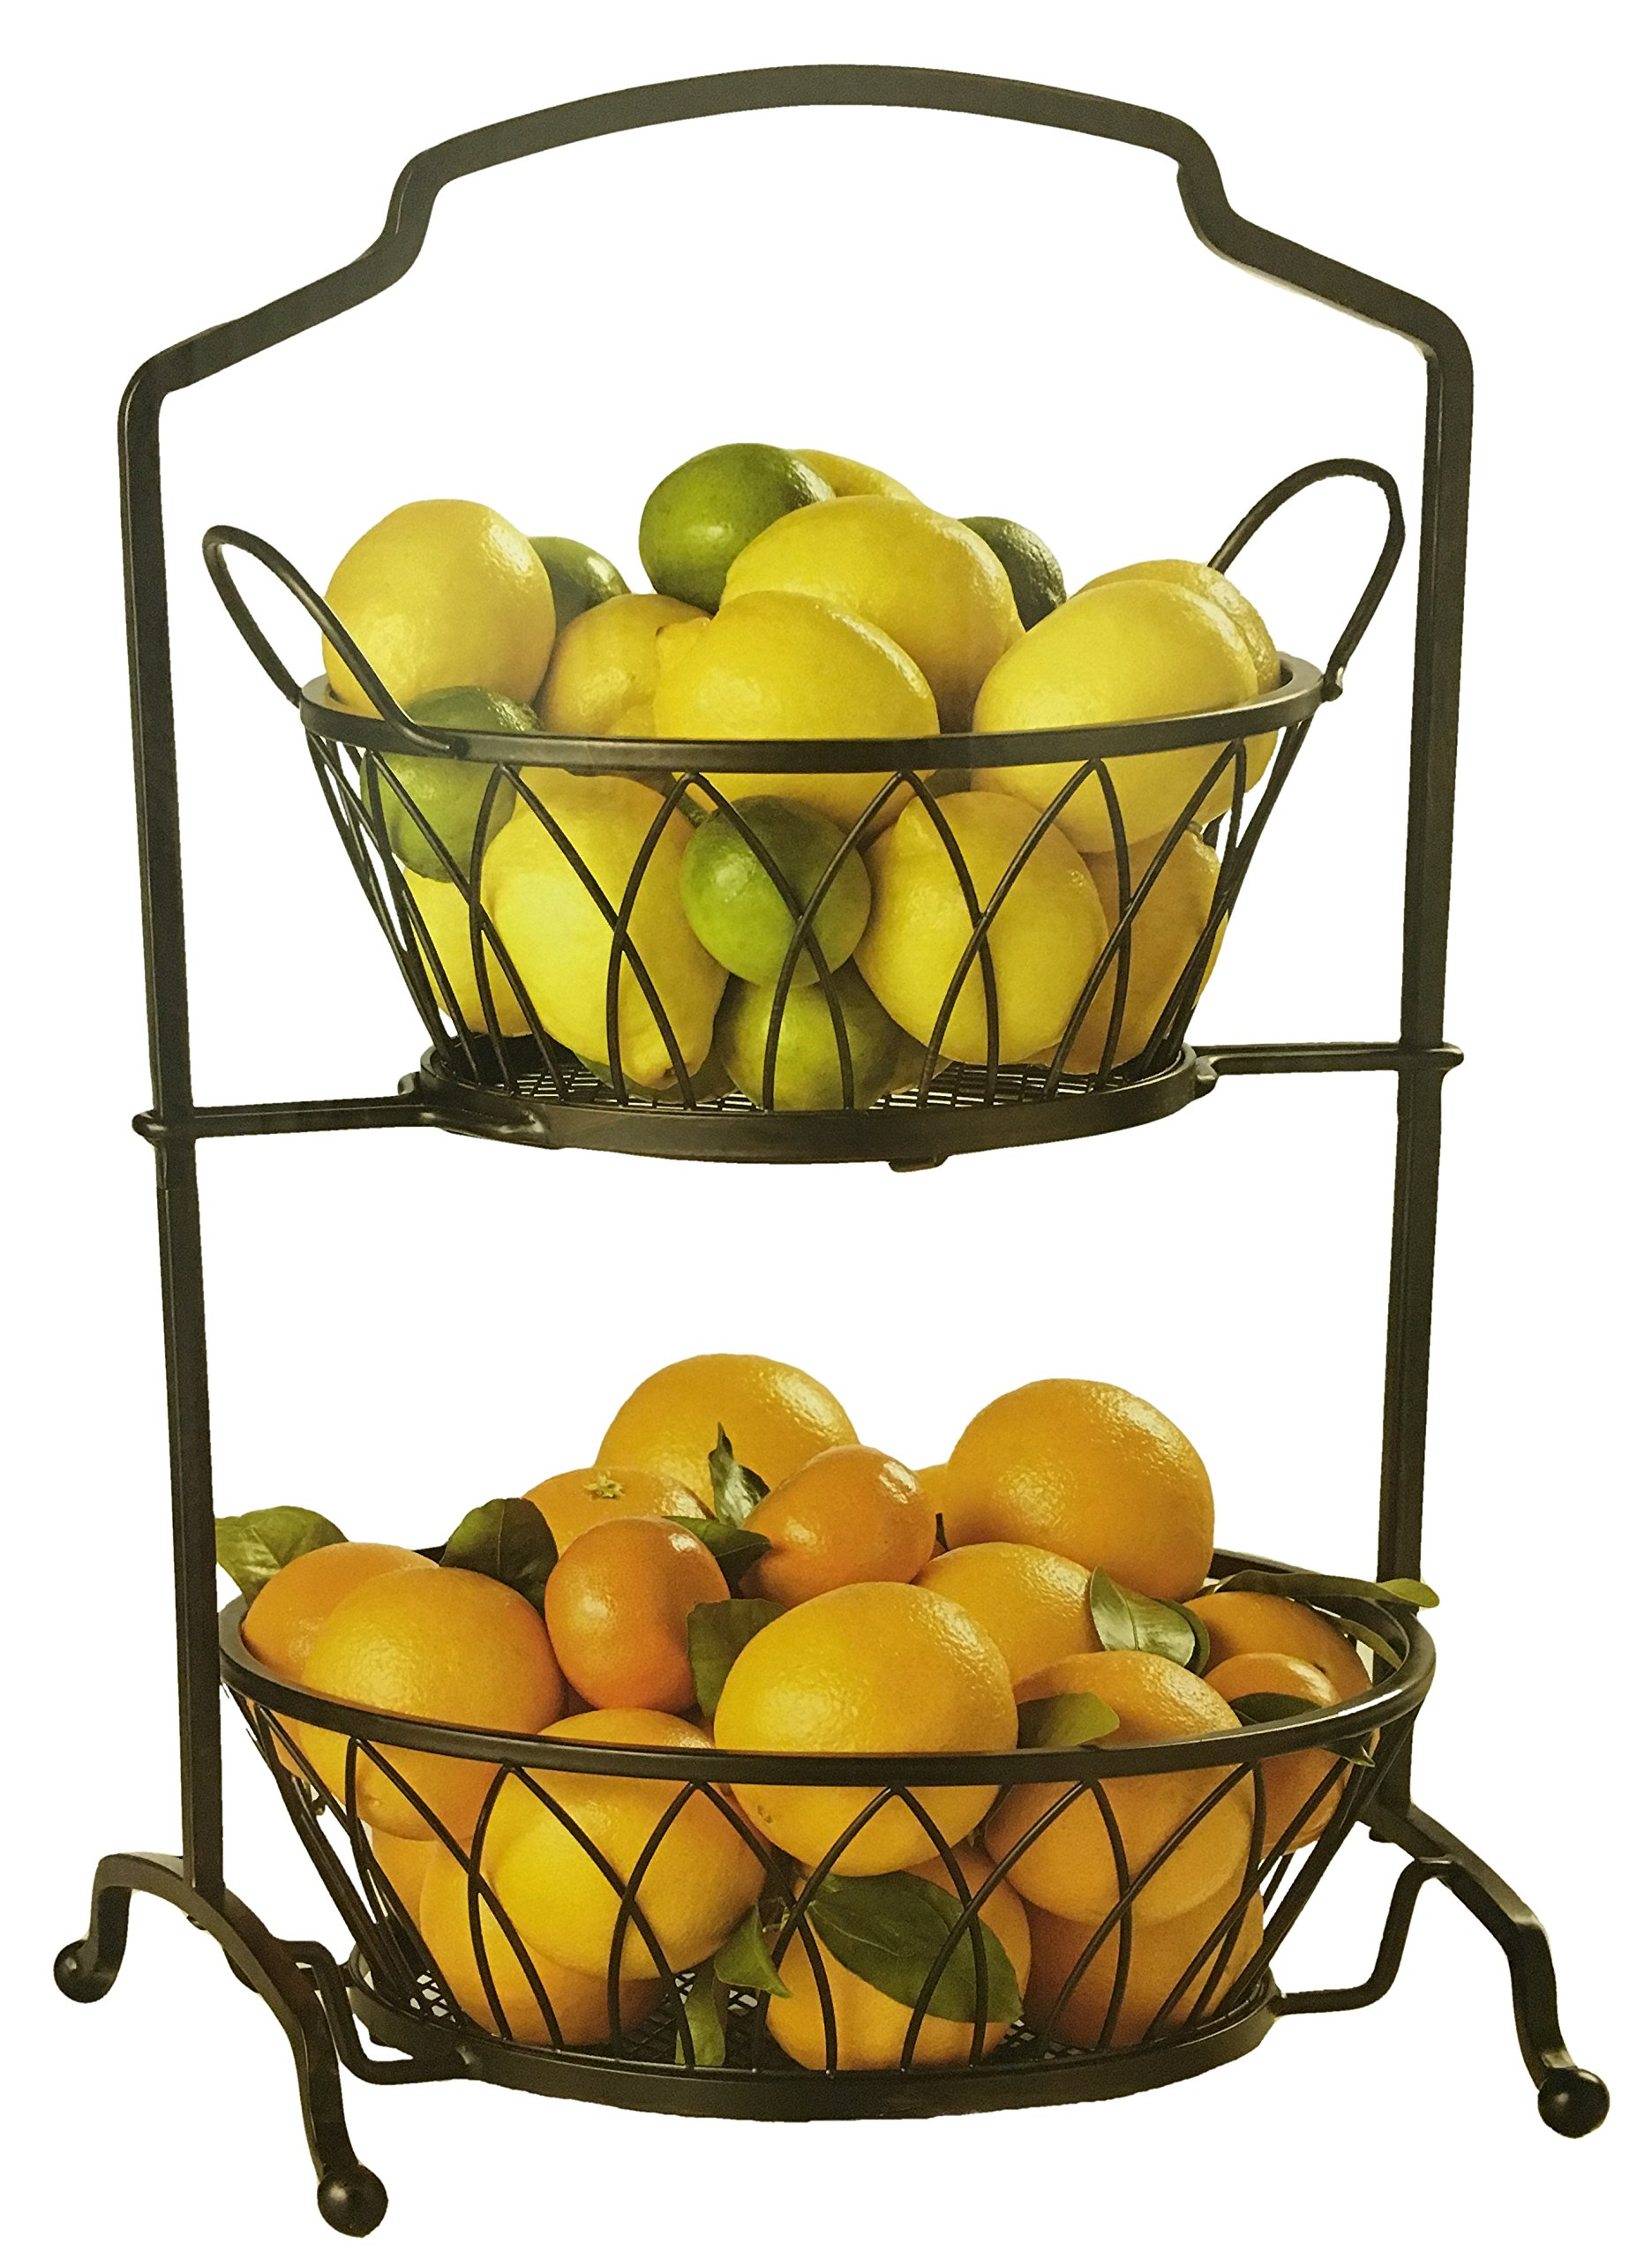 Wrought Iron Two Tier Buffet Stand or Food Storage Stand With Removable Baskets